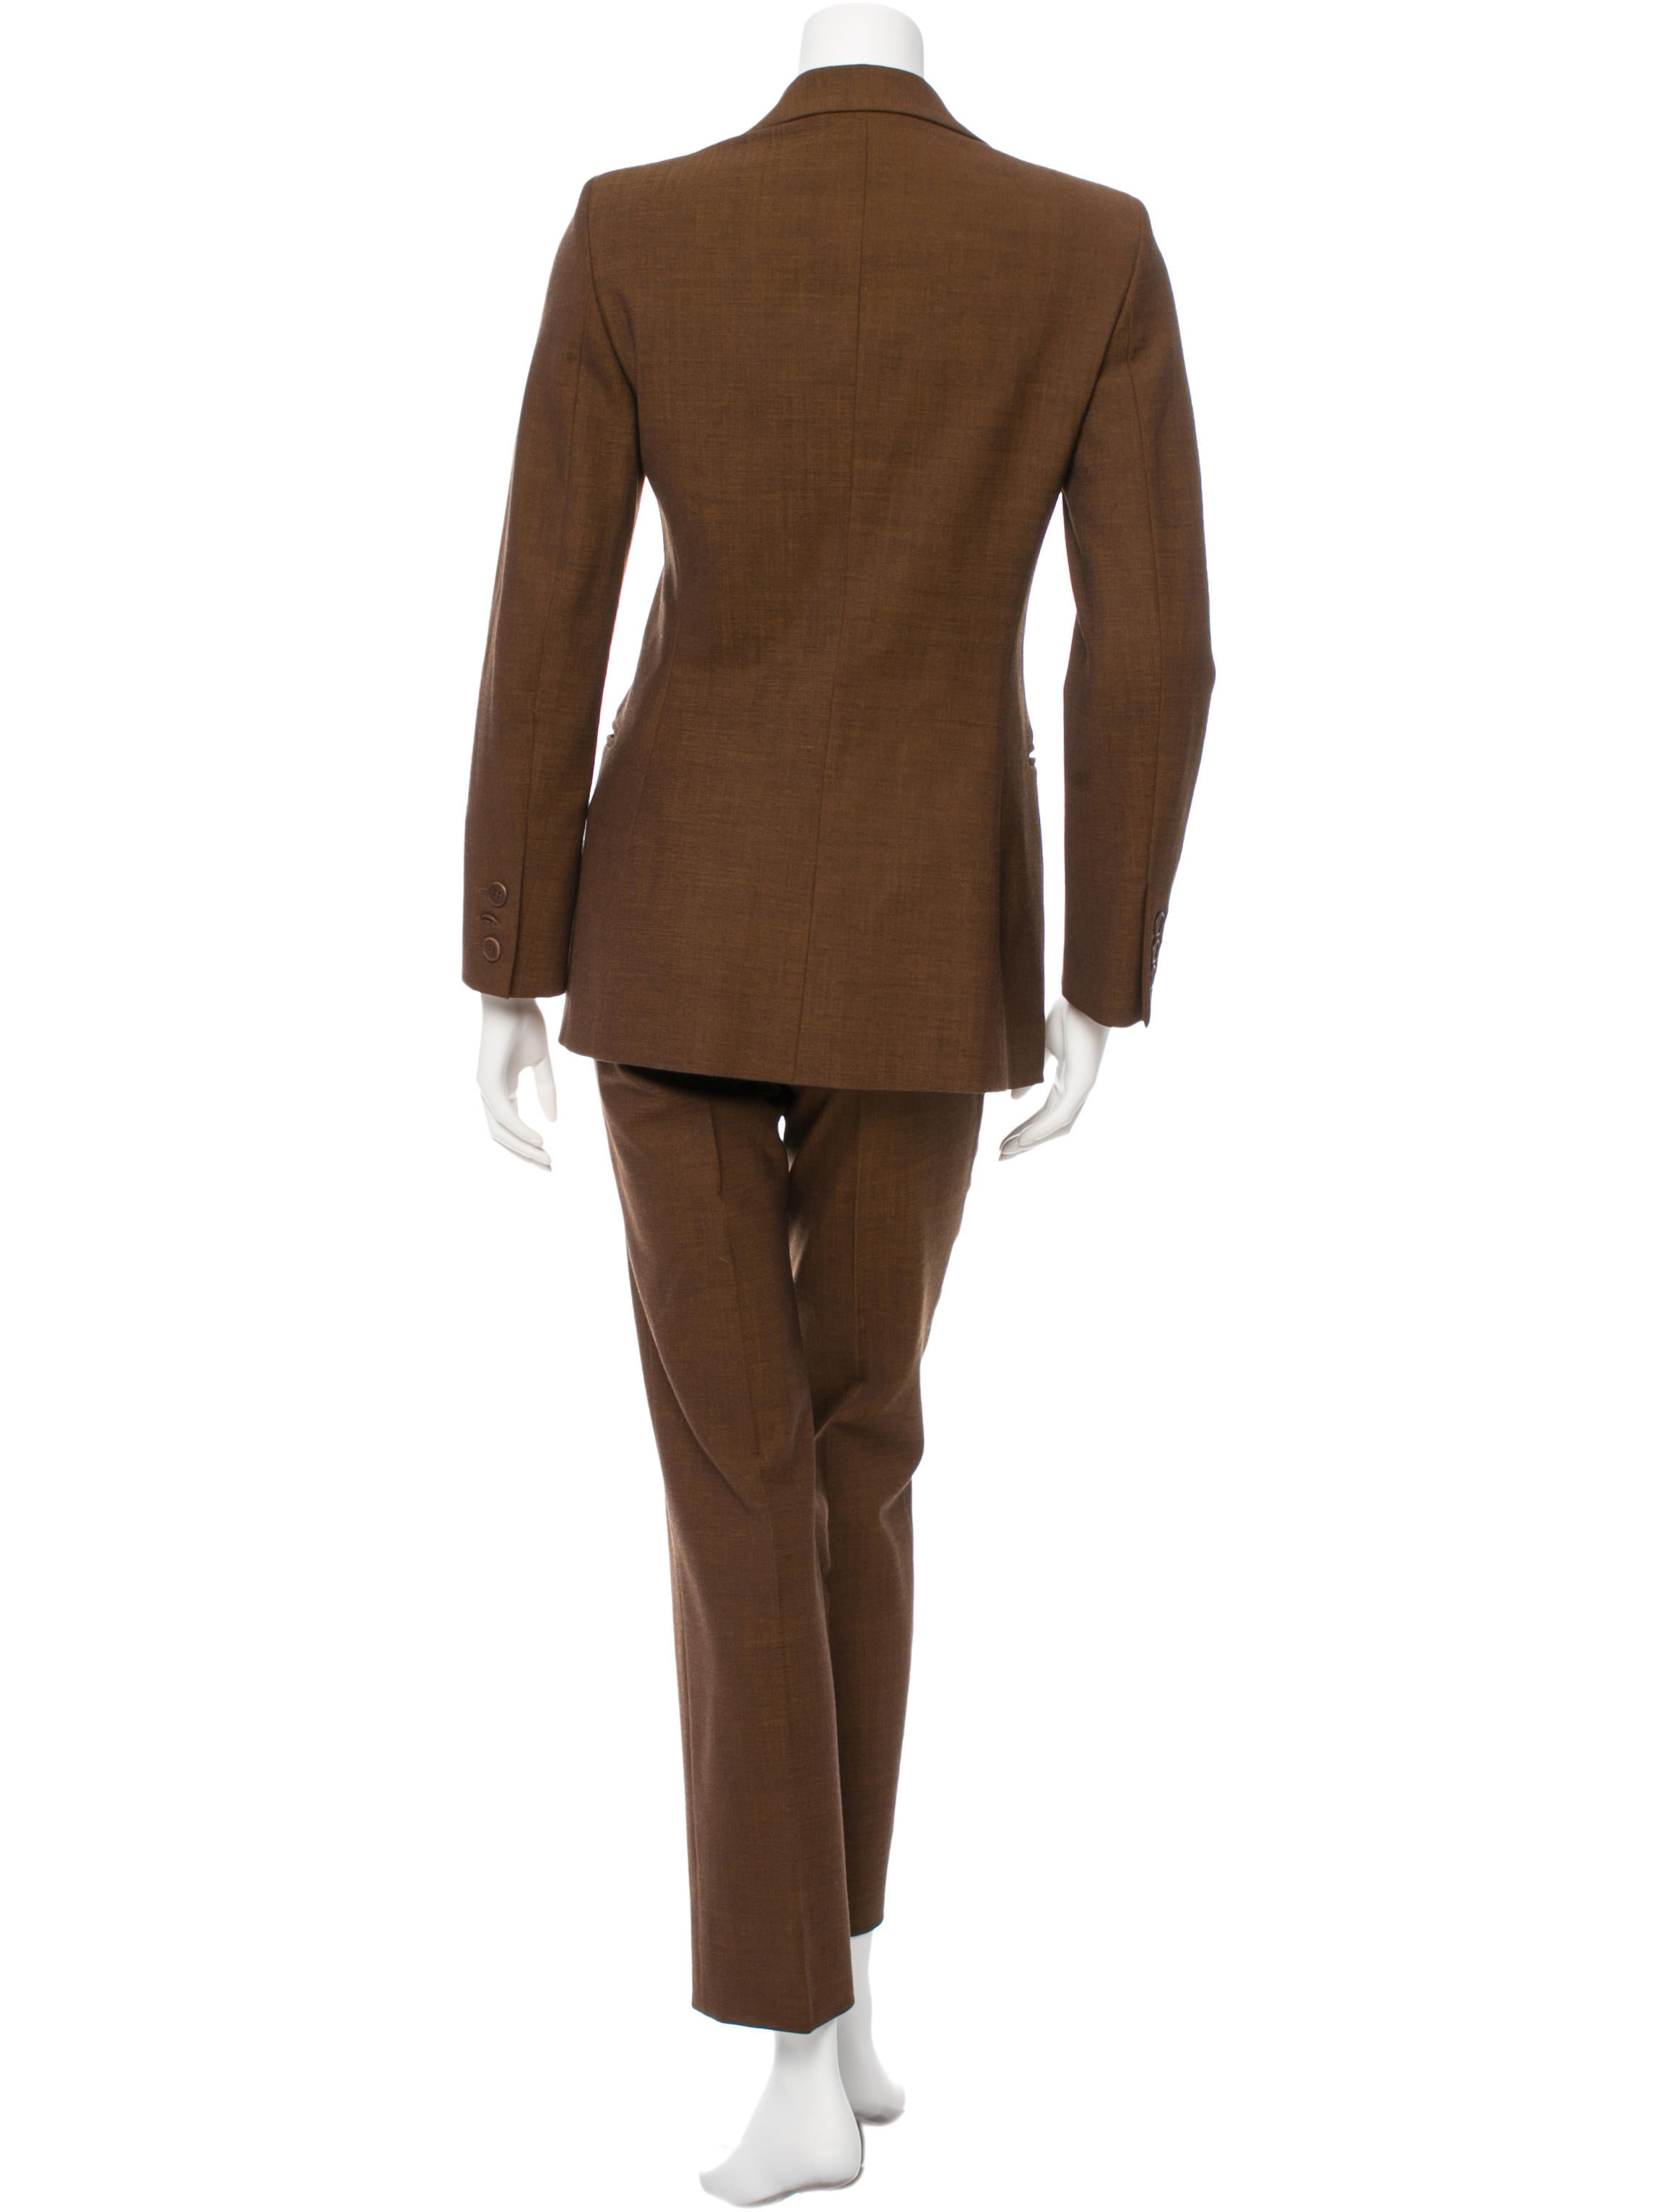 Find great deals on eBay for wool three piece suit. Shop with confidence.